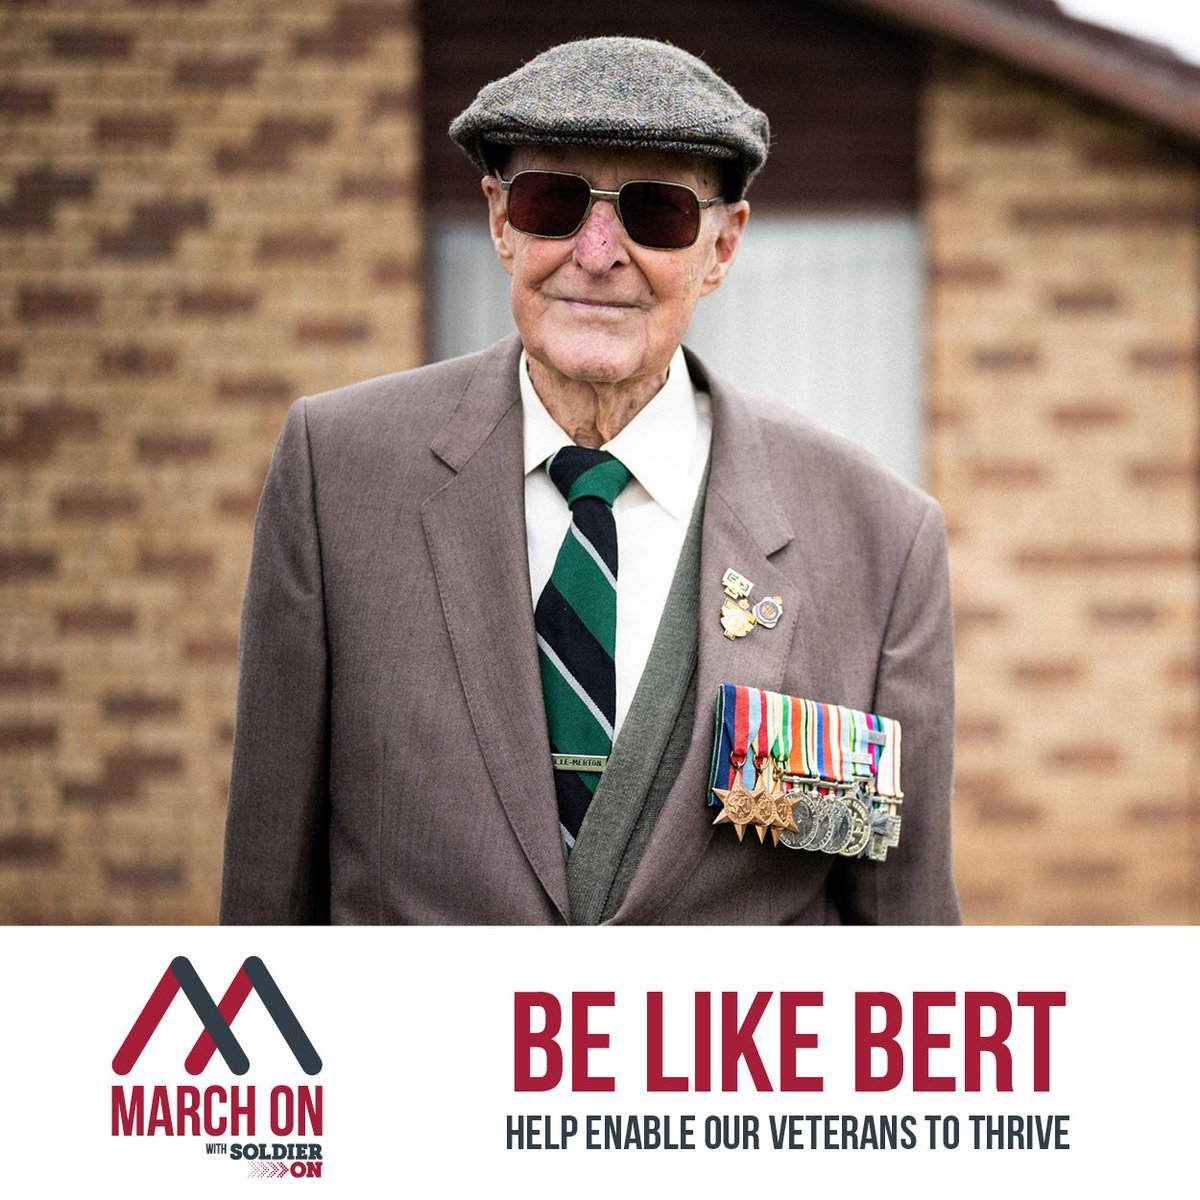 "Soldier On on Twitter: """"They all need care"" Bert said and he is doing his  part and keeping fit in his quest to raise money for Veterans and their  families. Bert is"